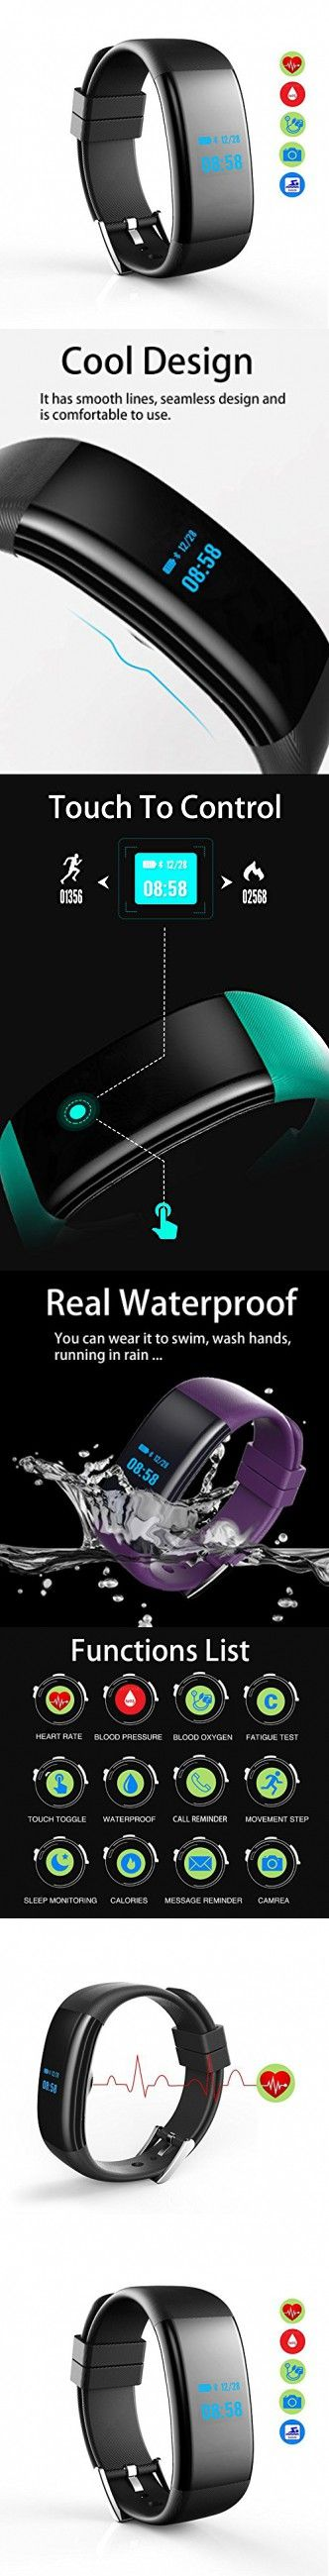 ESOOR IP68 Waterproof Smart Wristband Pedometer Smart Bracelet Blood Pressure Heart Rate Oxygen Monitor Fitness Tracker Band for iPhone and Android